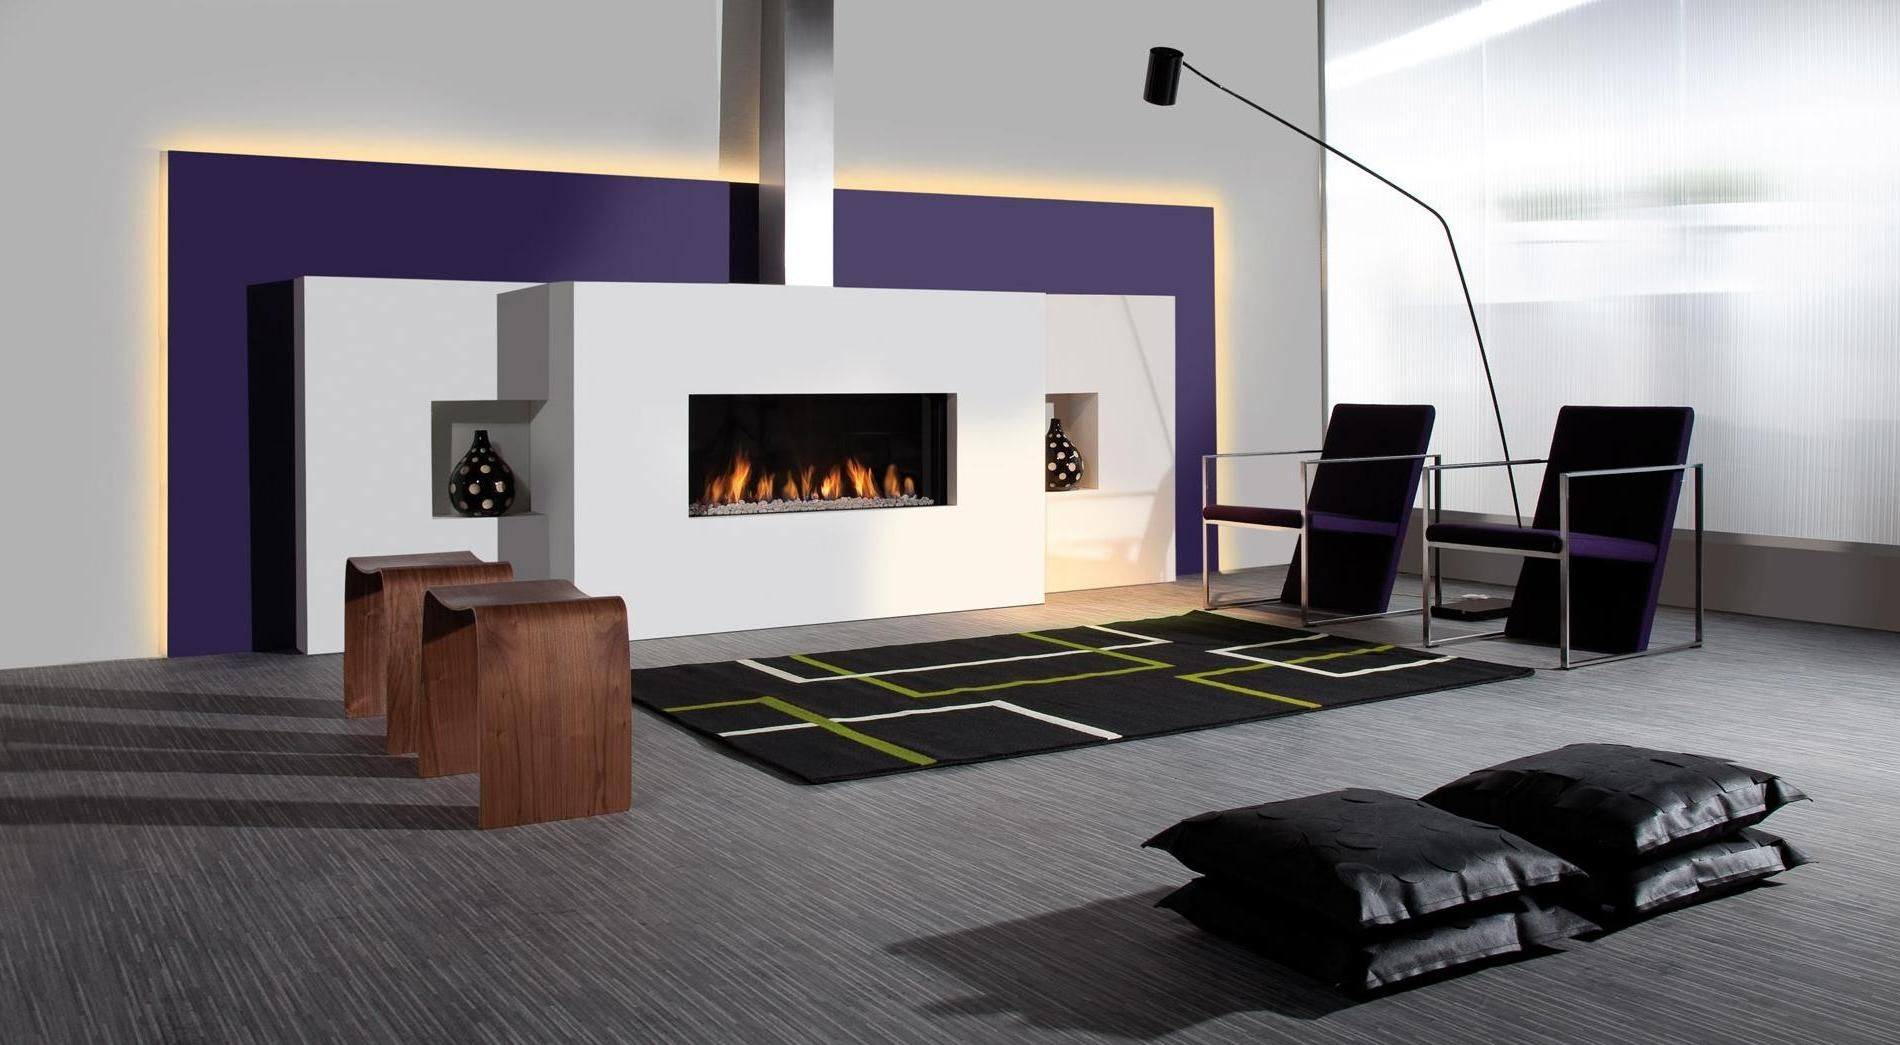 House DesignCool And Modern Living Interior Design With Amazing Fireplace Mantel Unique Purple Arm Chair Also Stunning Rectangular Rug On Gray Carpet